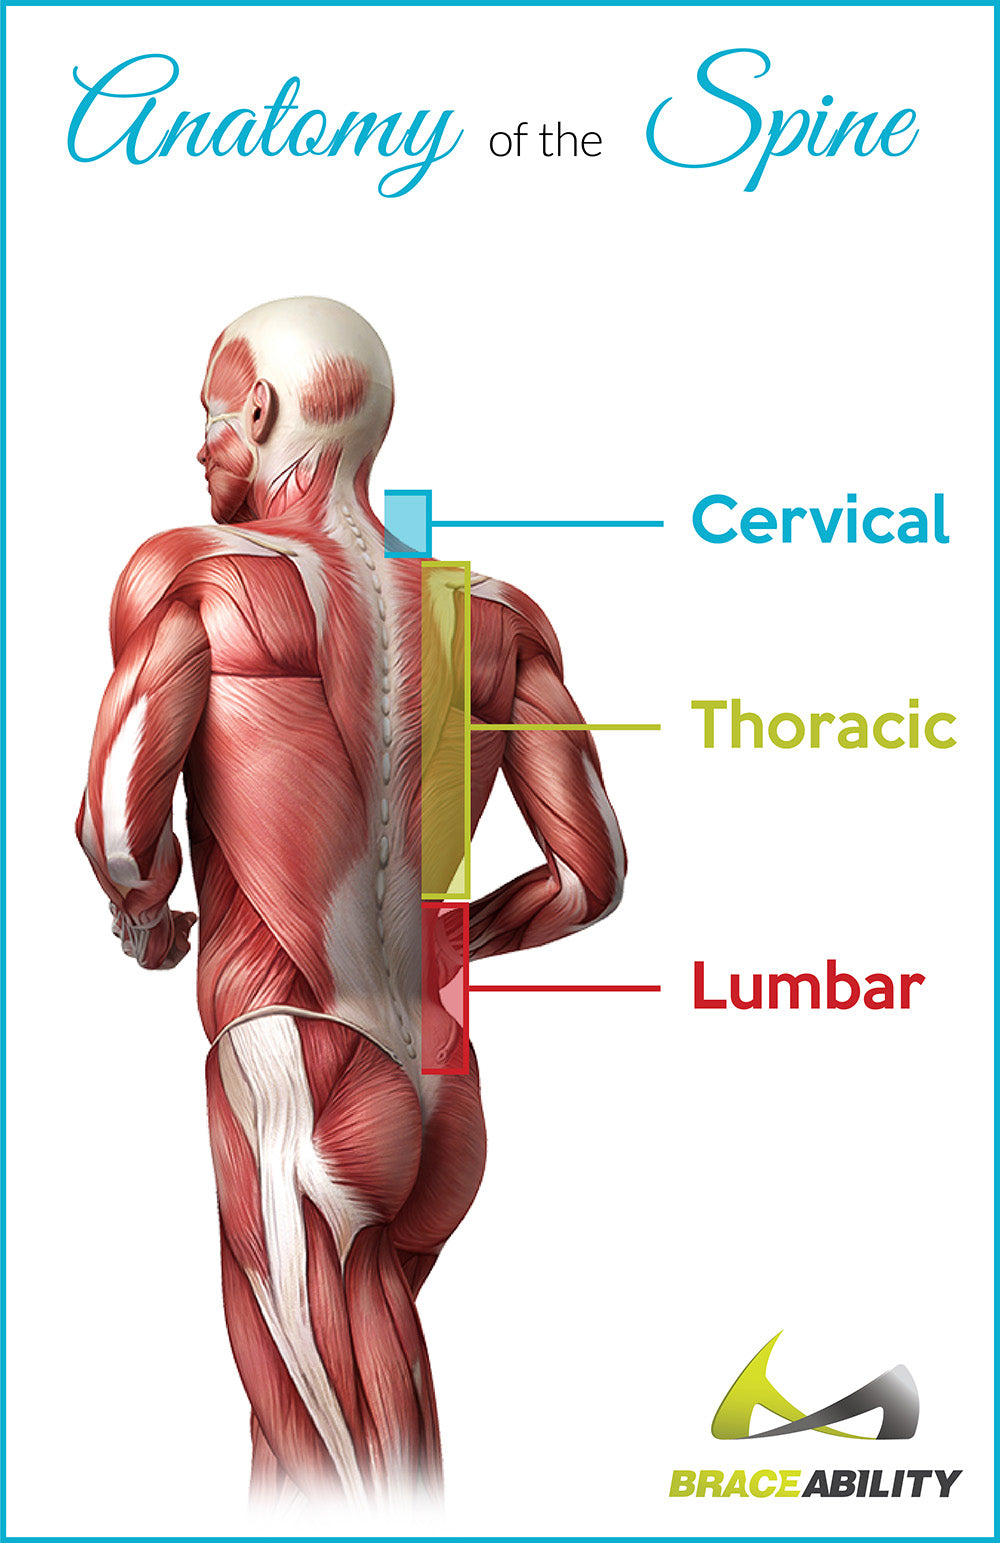 Anatomy of your spine and where a lumbar back herniated disc would be located